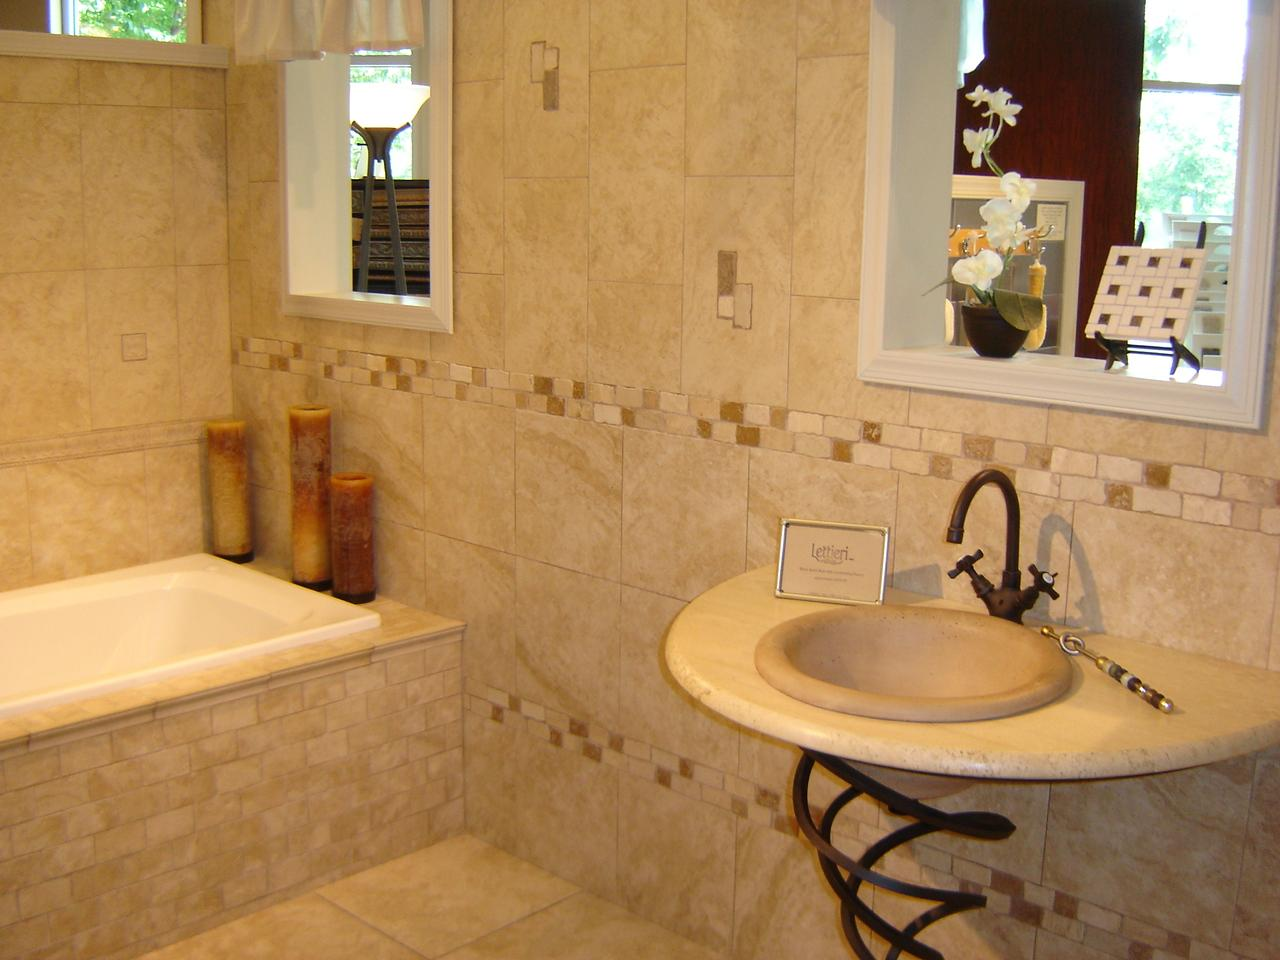 bathroom tile design ideas On bathroom tiles design